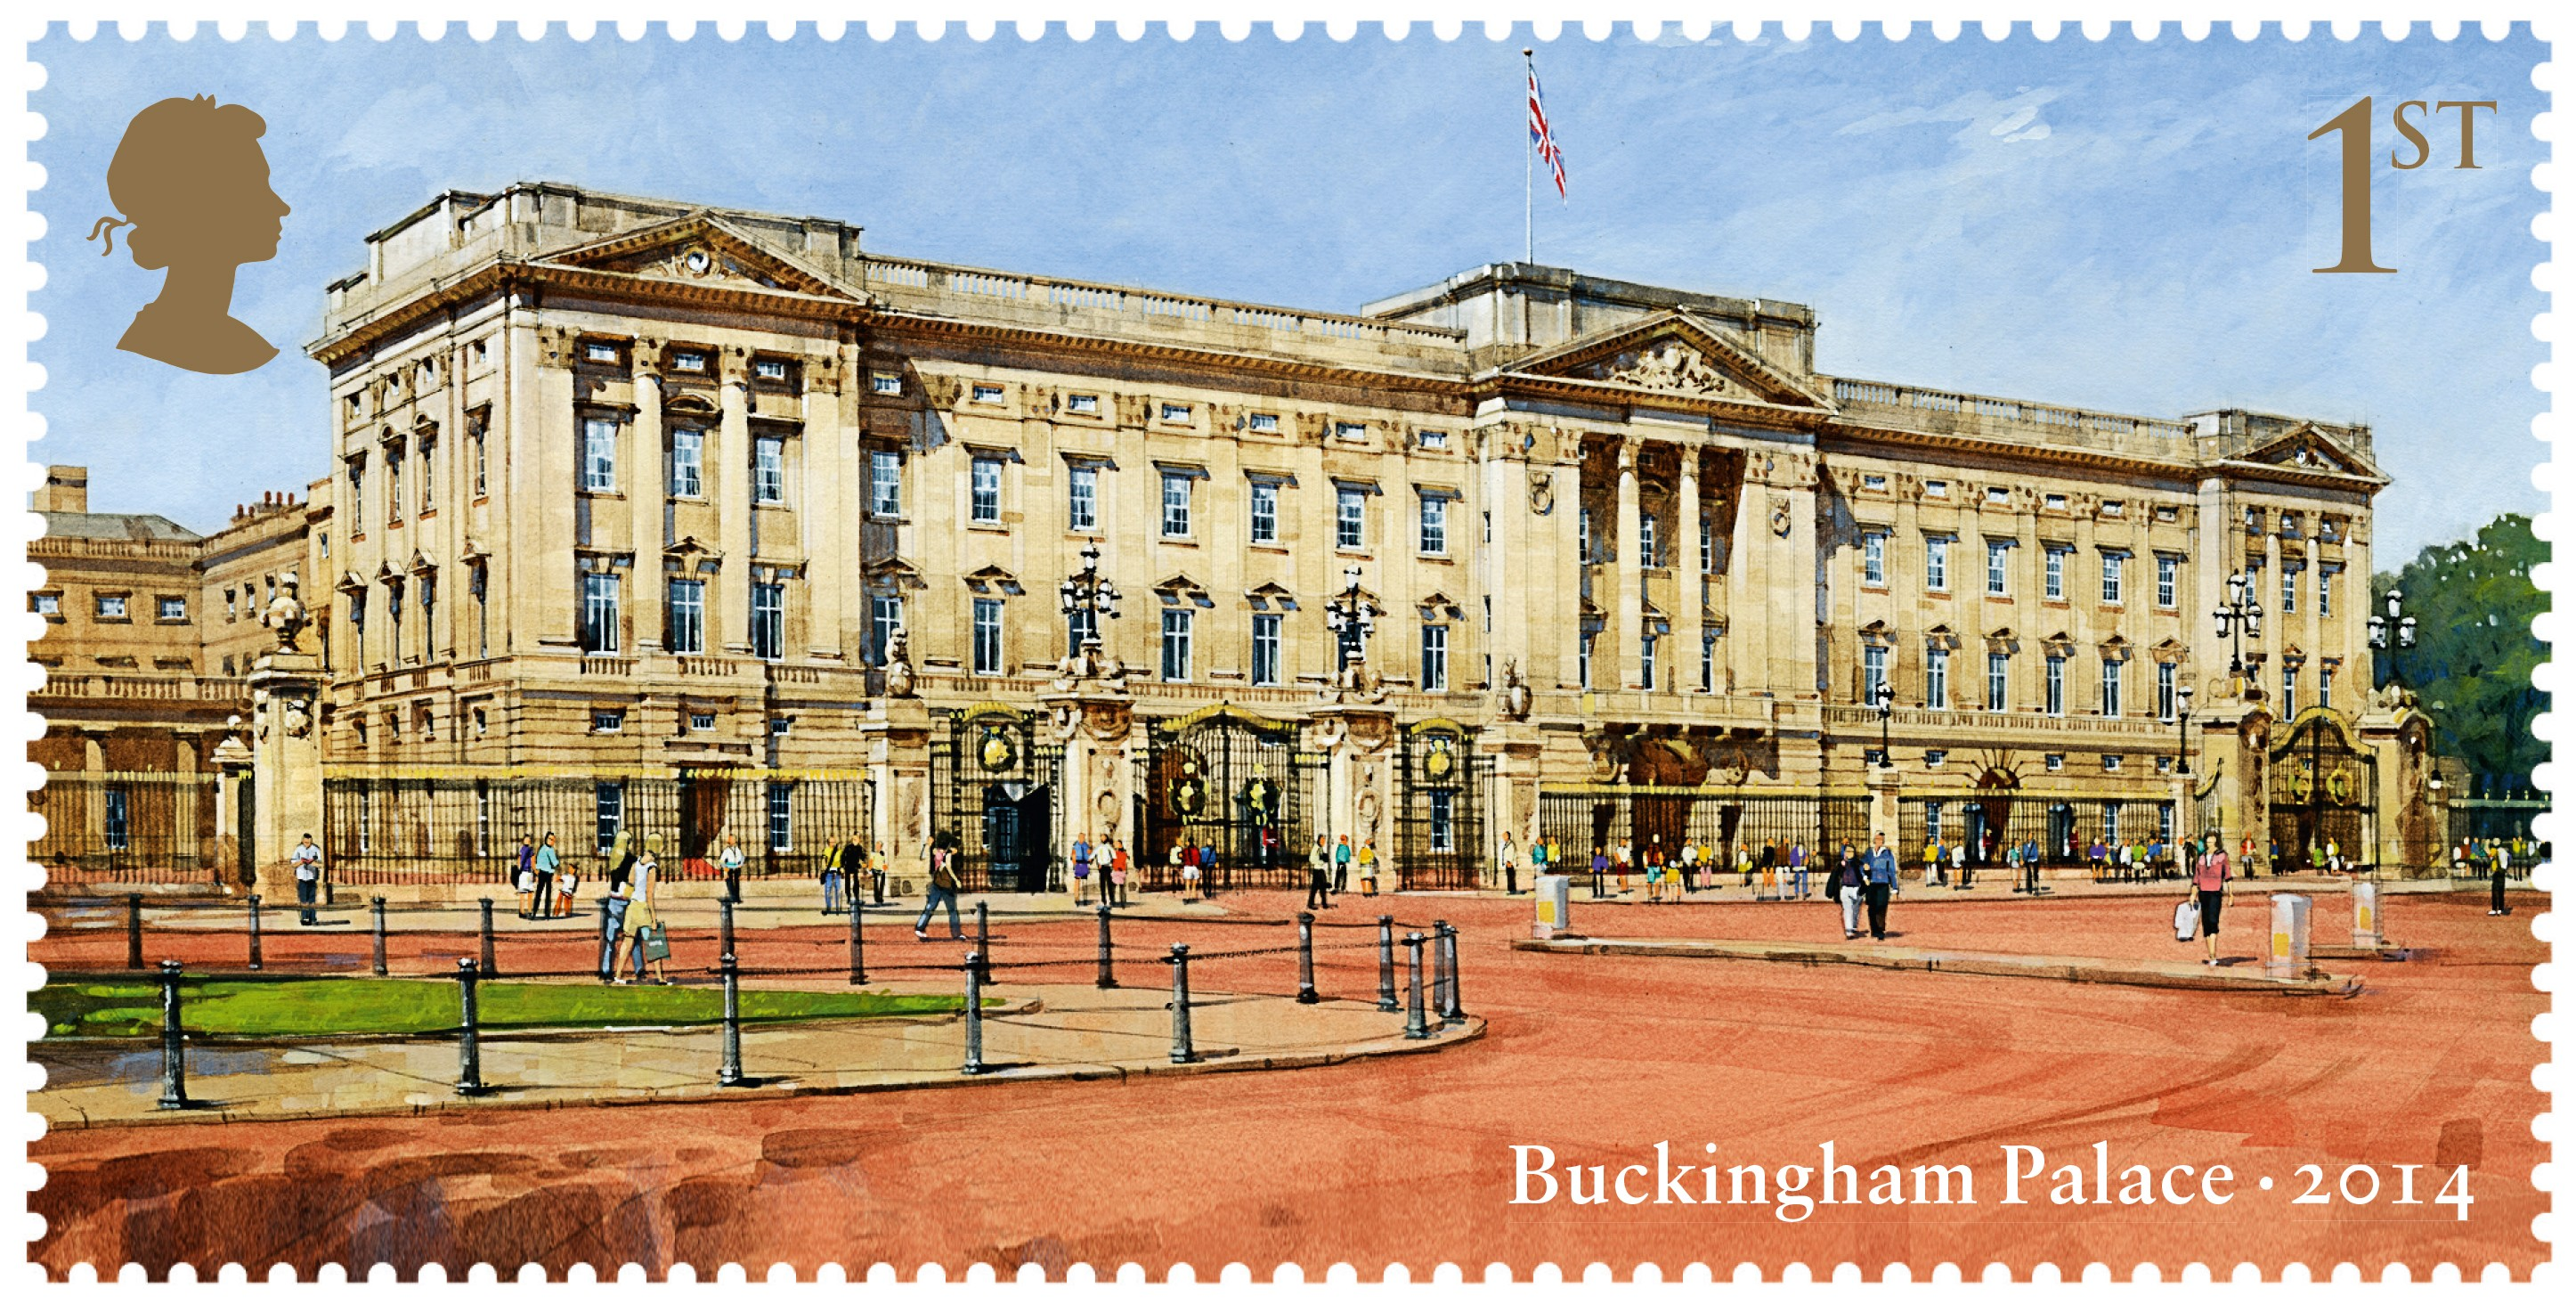 buckingham palace essay The state rooms, buckingham palace the royal mews, buckingham palace  the queen's gallery, buckingham palace clarence house windsor castle.